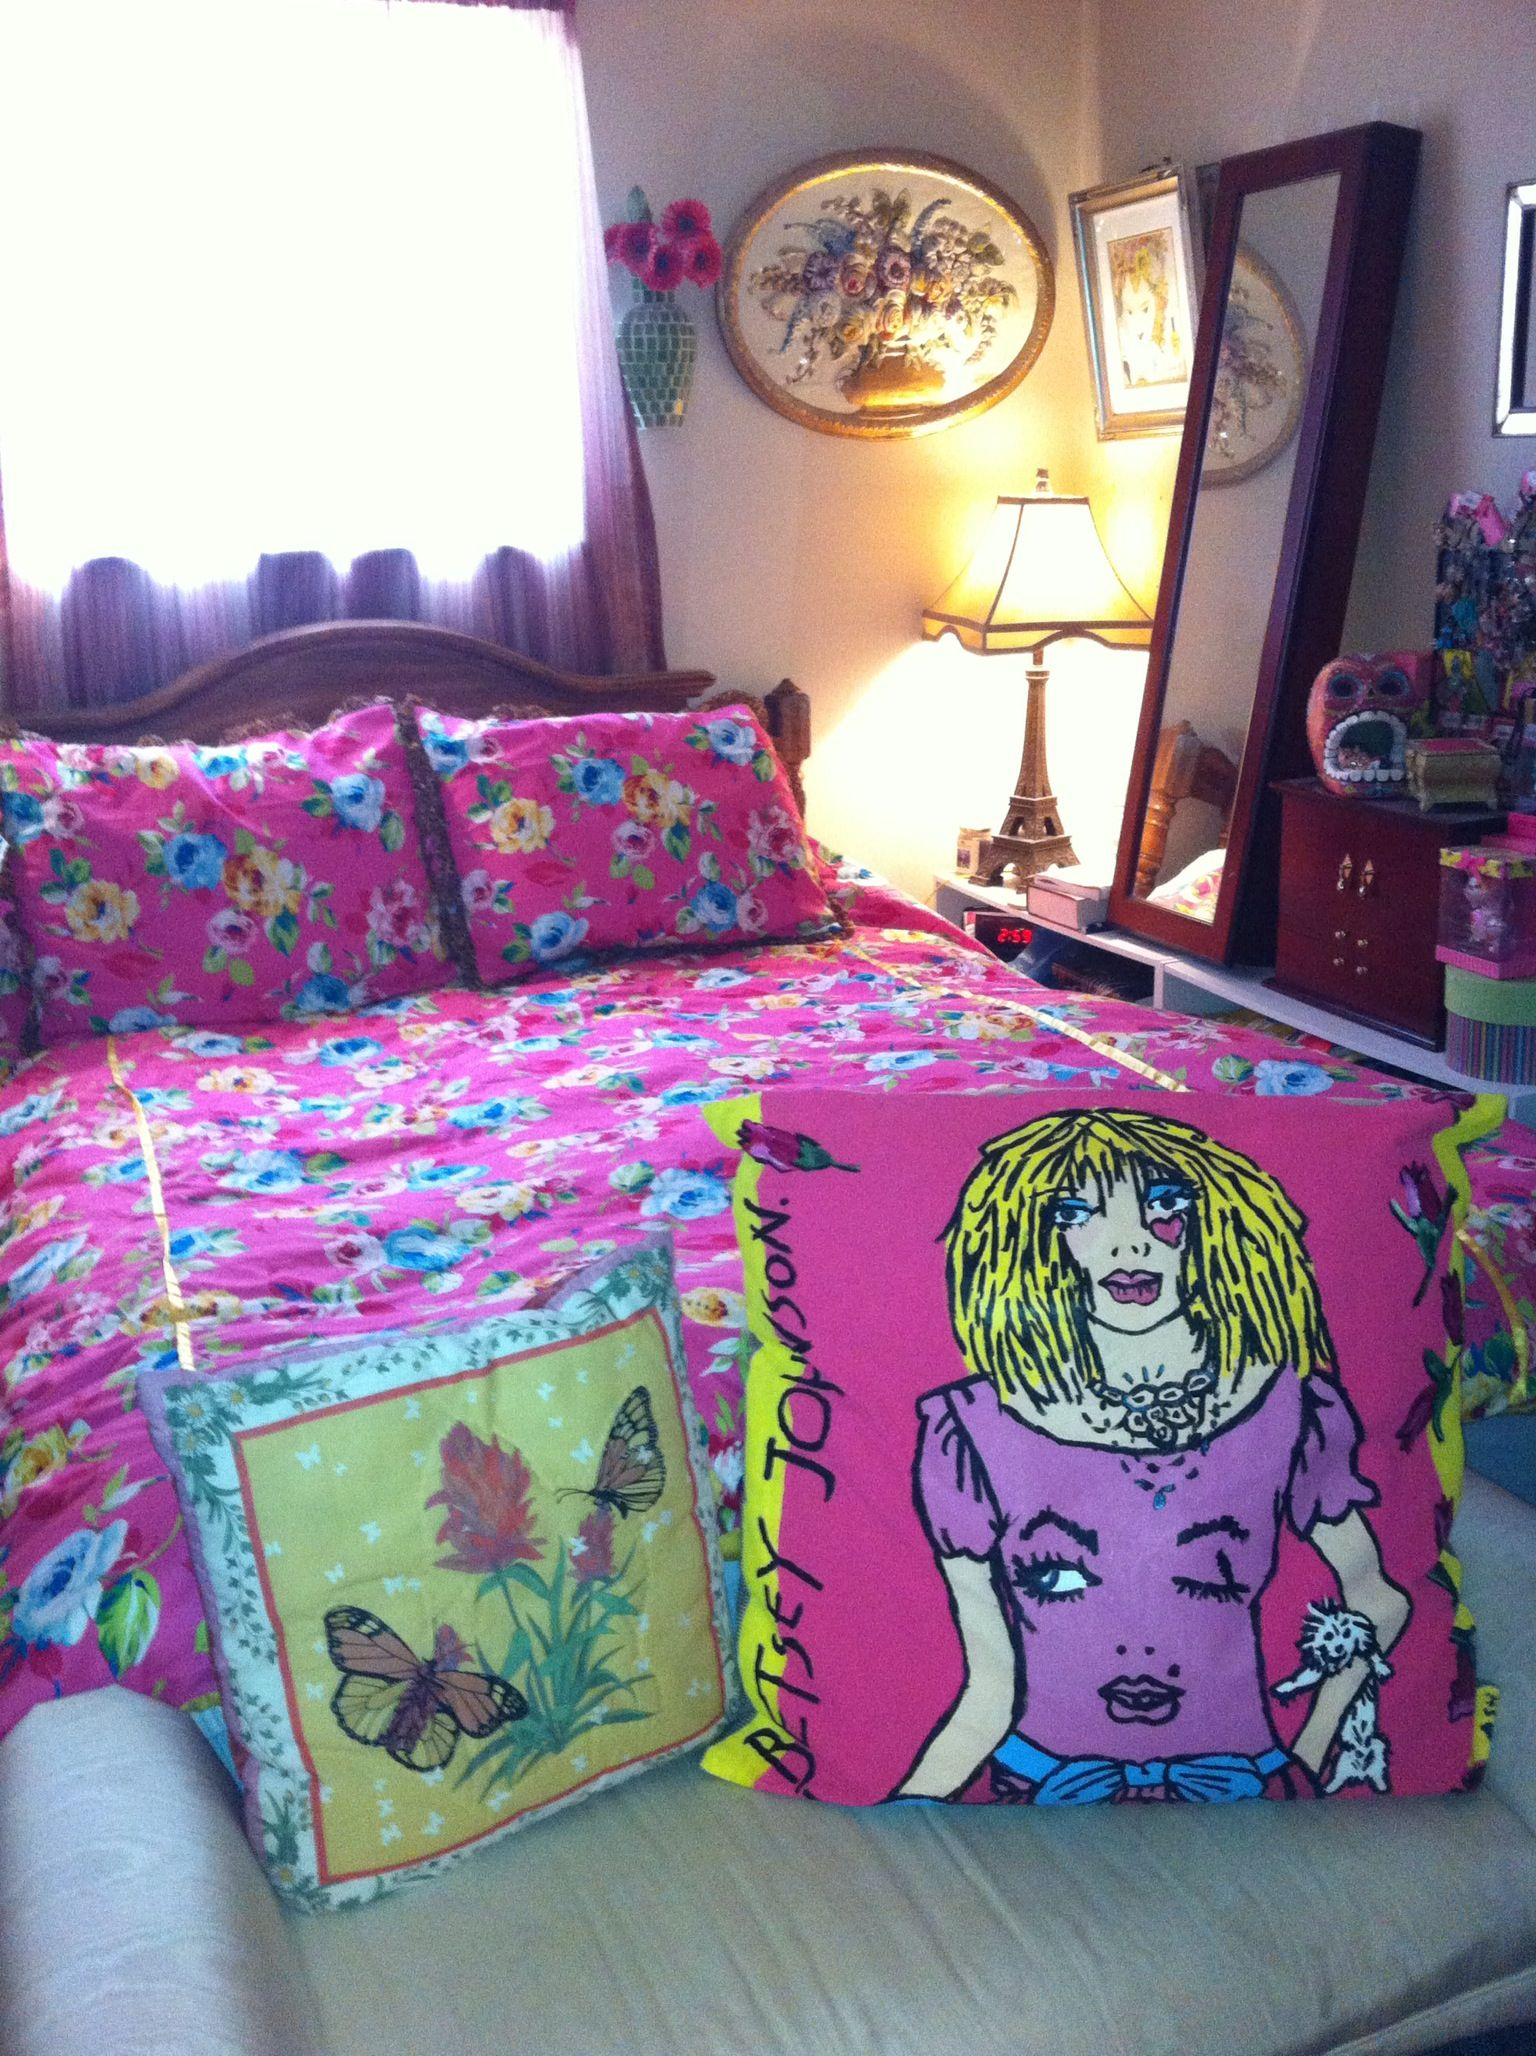 betsey johnson inspired bedding with hand painted pillow! i wish